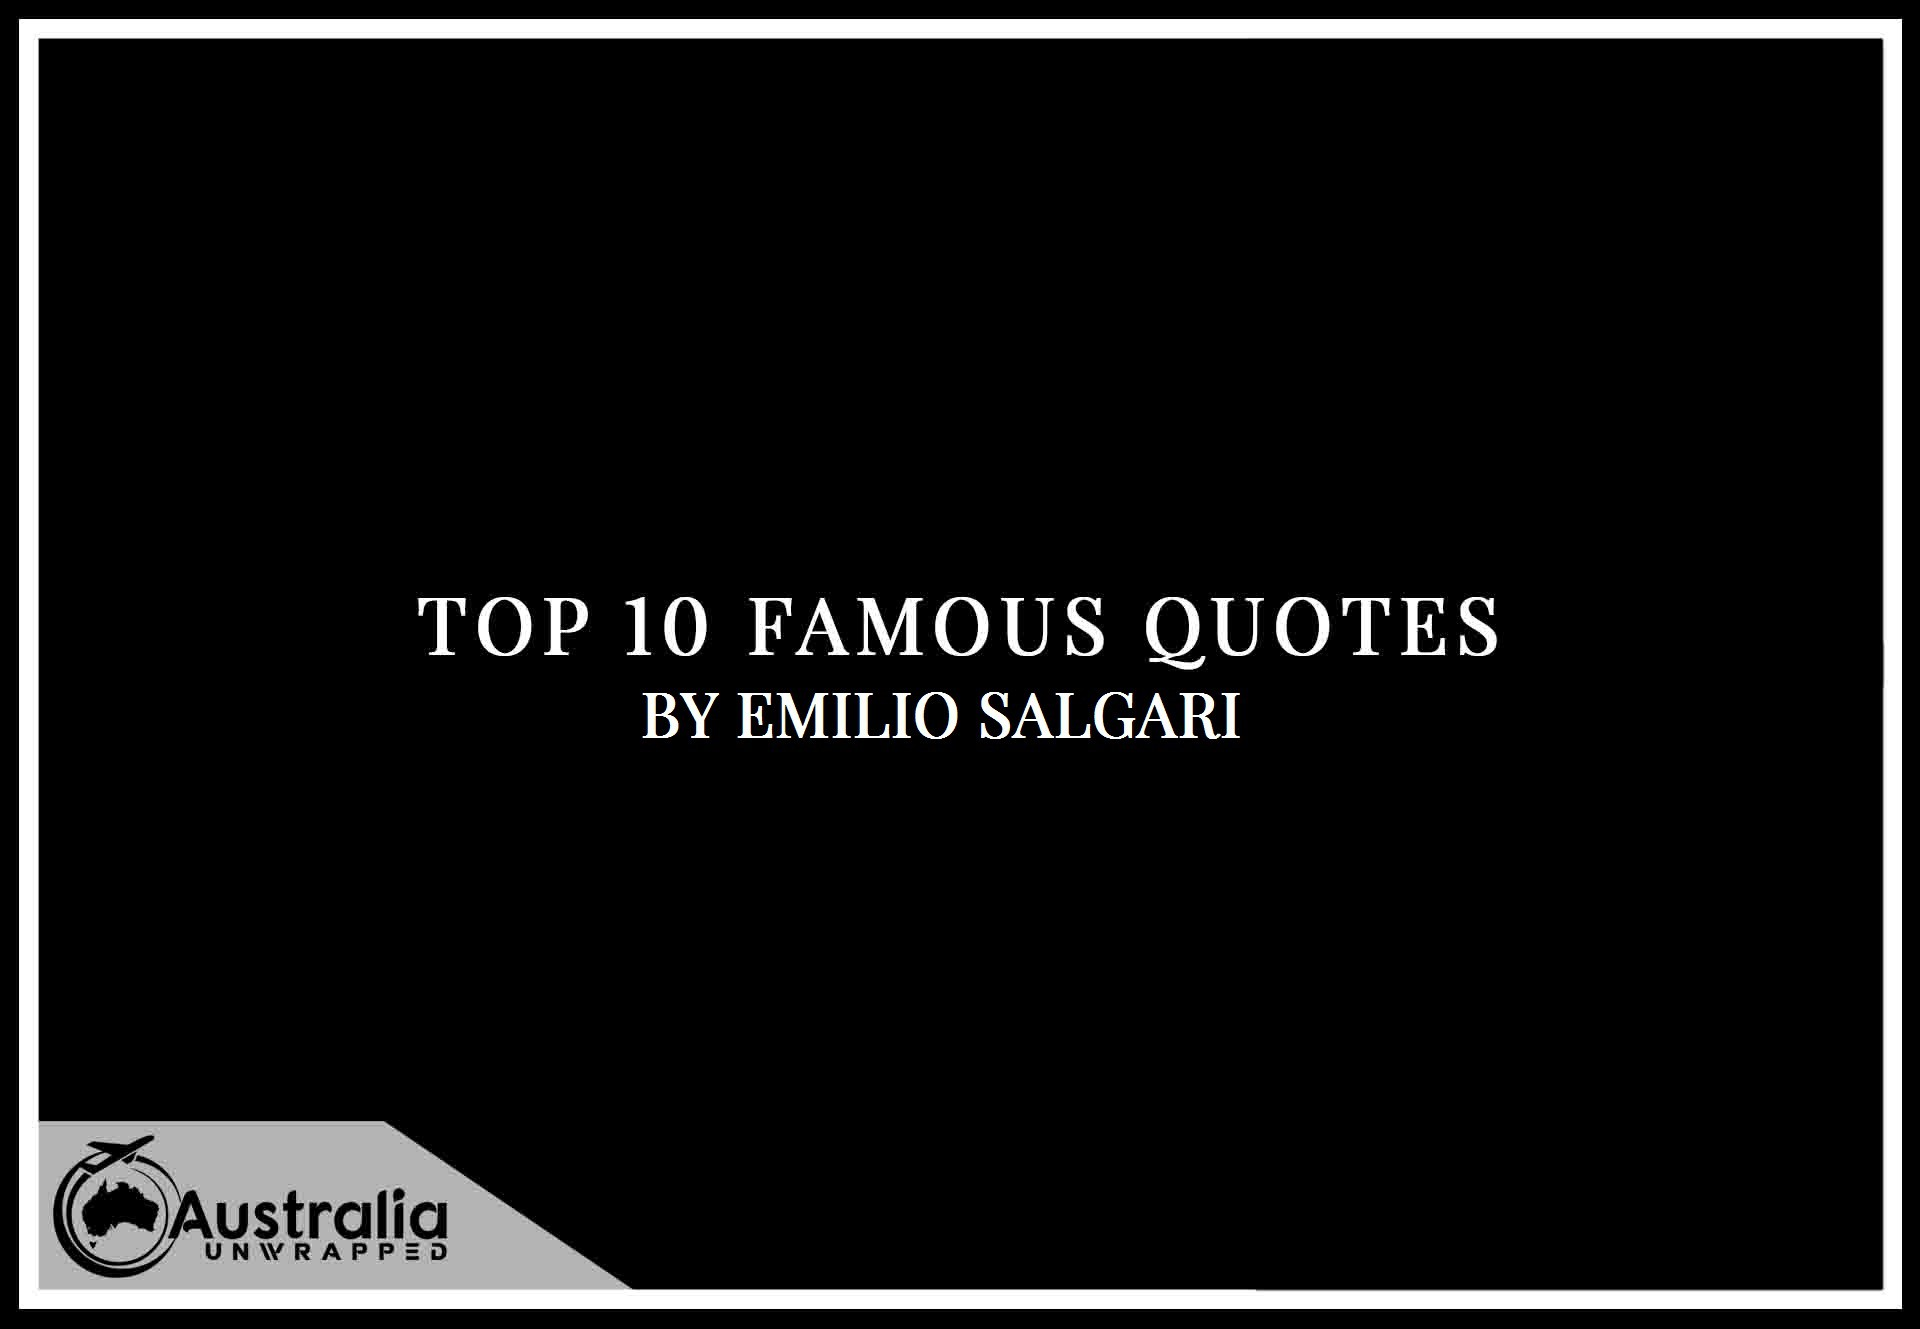 Emilio Salgari's Top 10 Popular and Famous Quotes